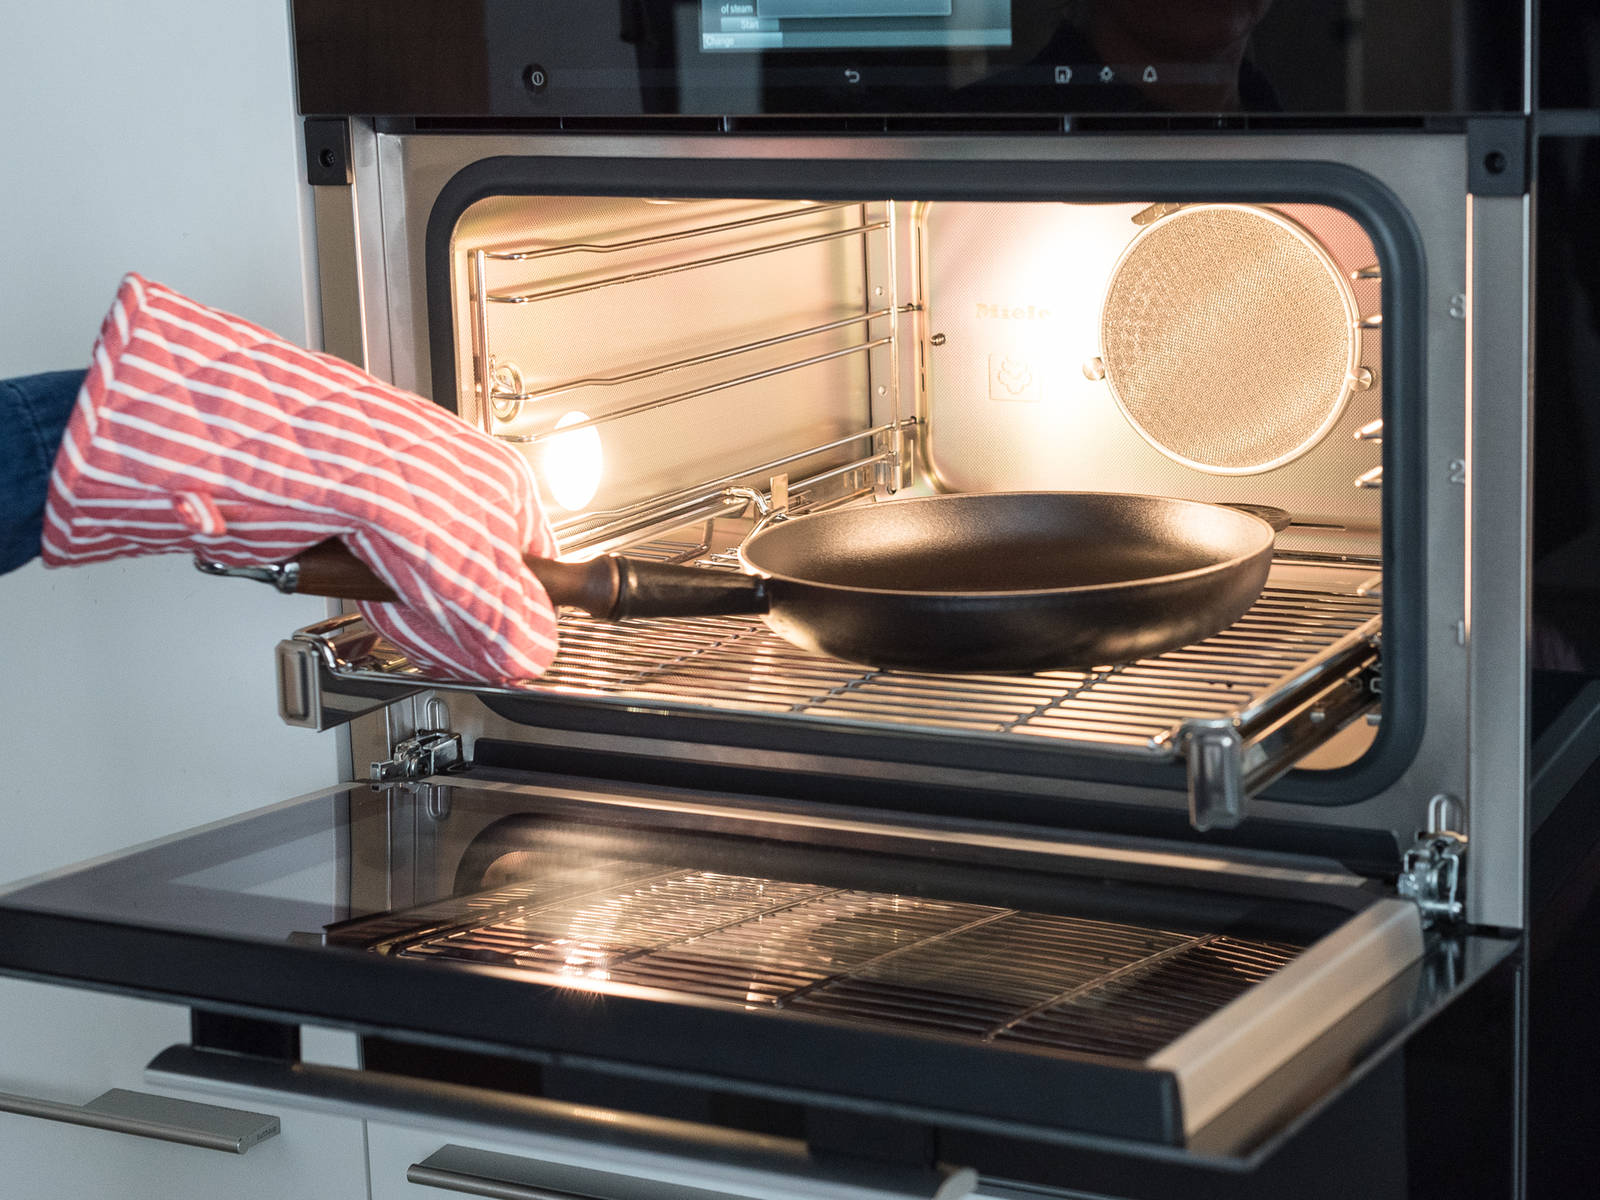 Meanwhile, place an ovenproof frying pan in oven and preheat to 220°C/425°F. Remove frying pan from oven.